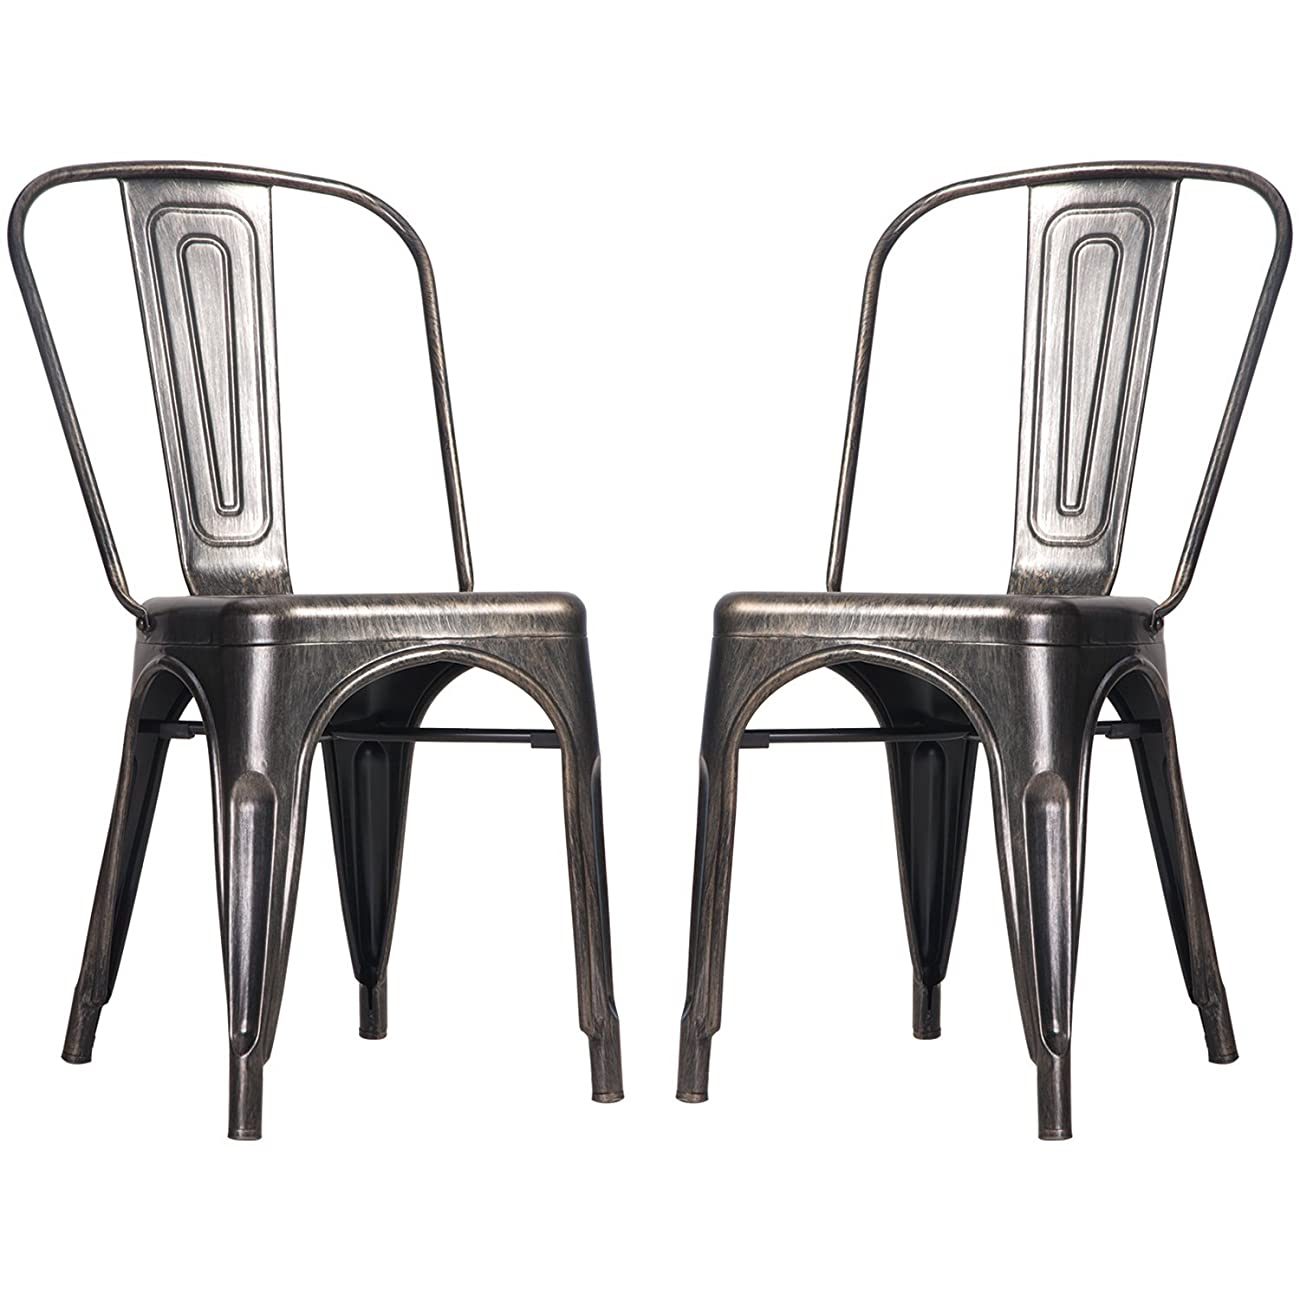 Merax High Back Steel Stackable Vintage Metal Dining Chair, Golden Black (Set of 2) 0